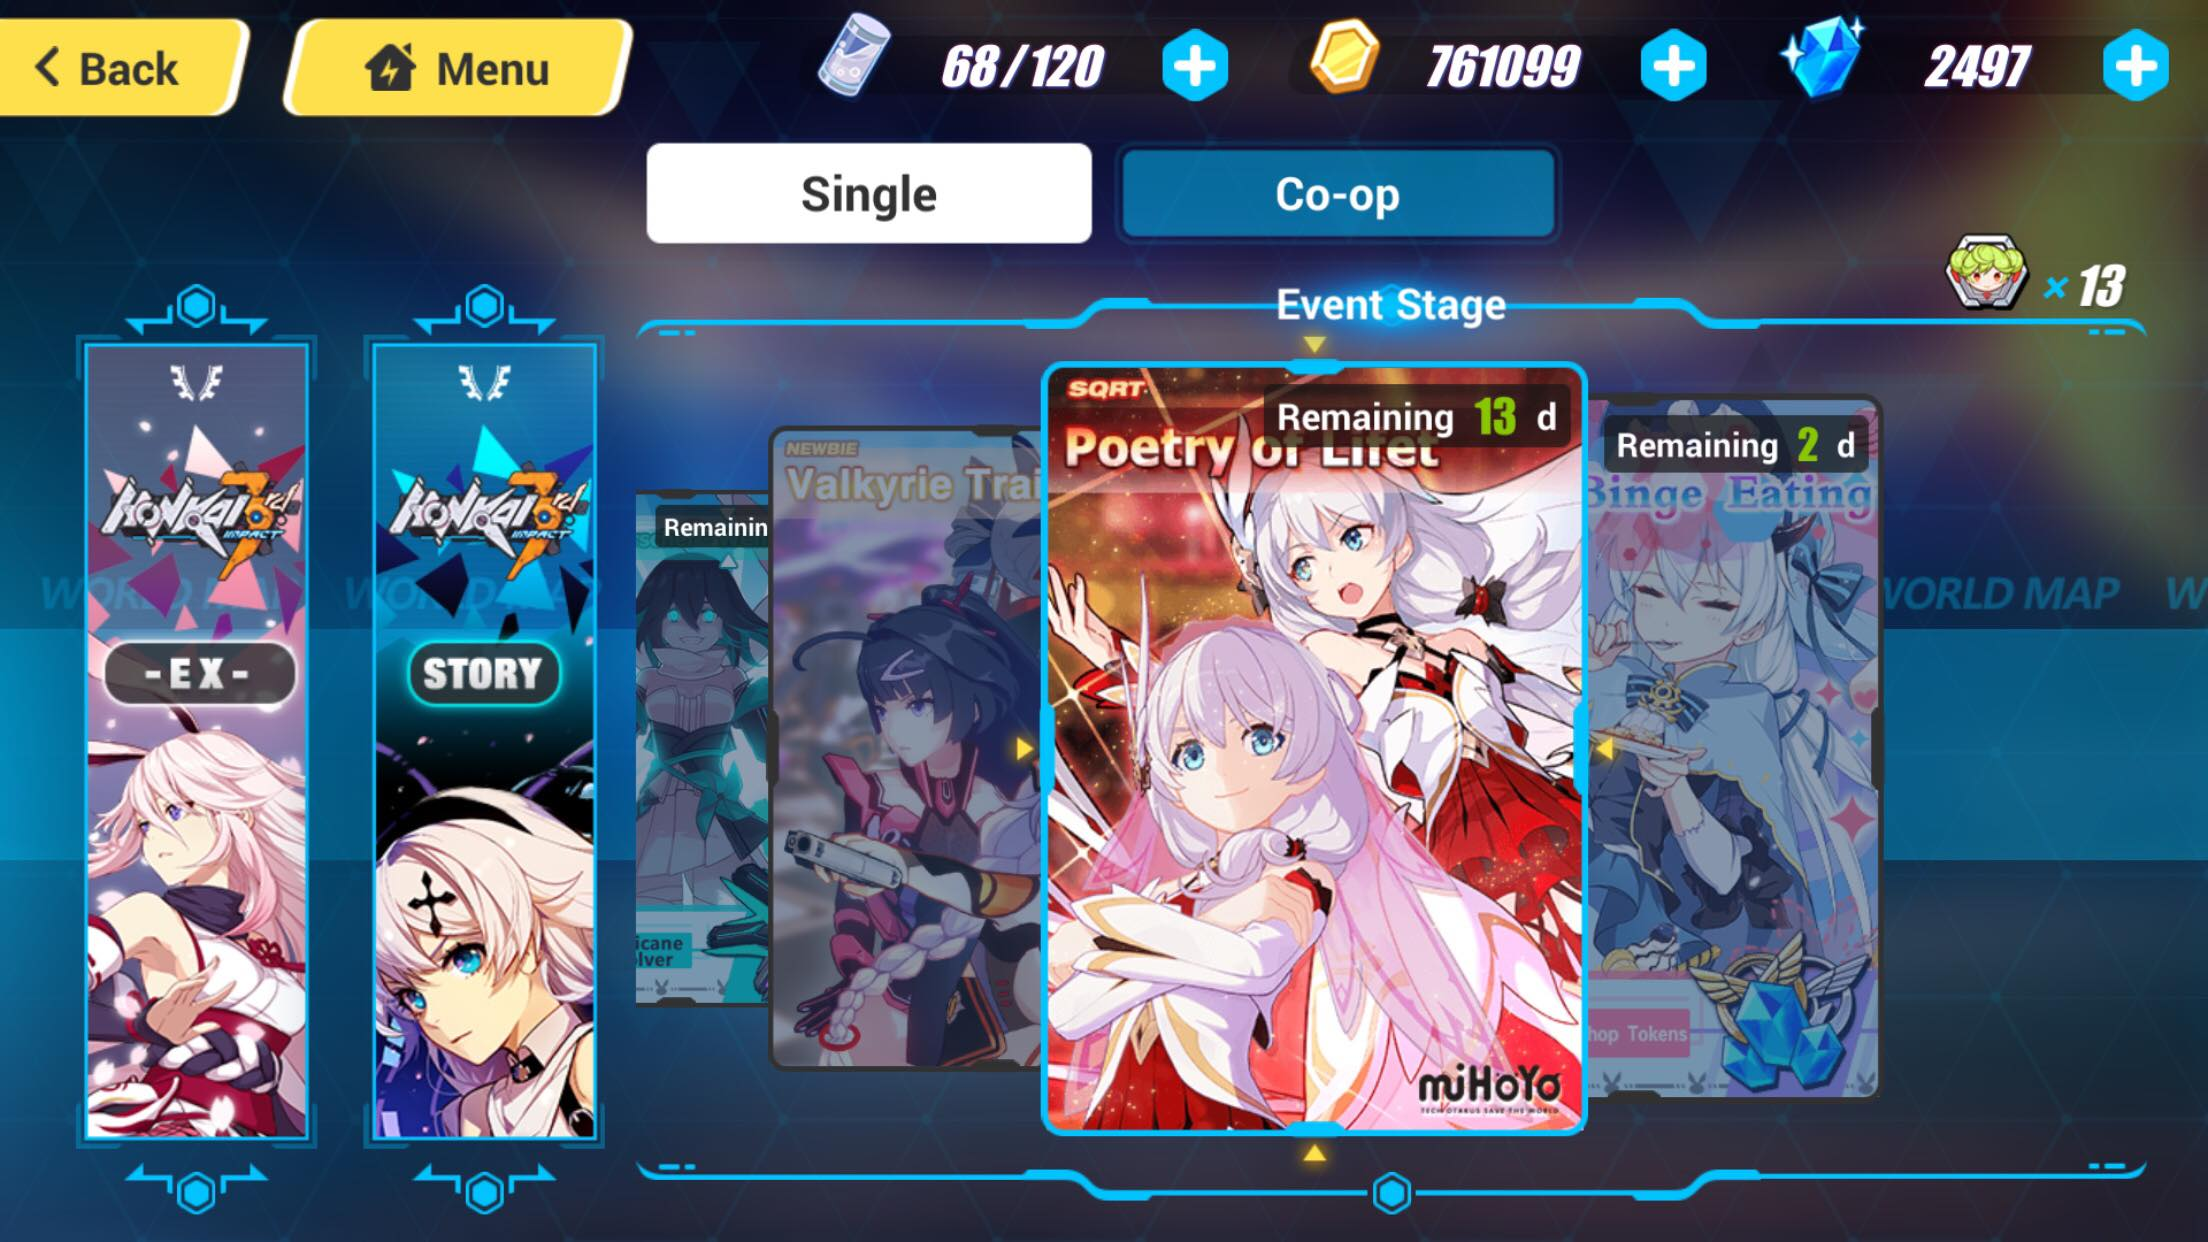 Top 5 easy tips and tricks for beginners (Honkai Impact 3) - Gaming